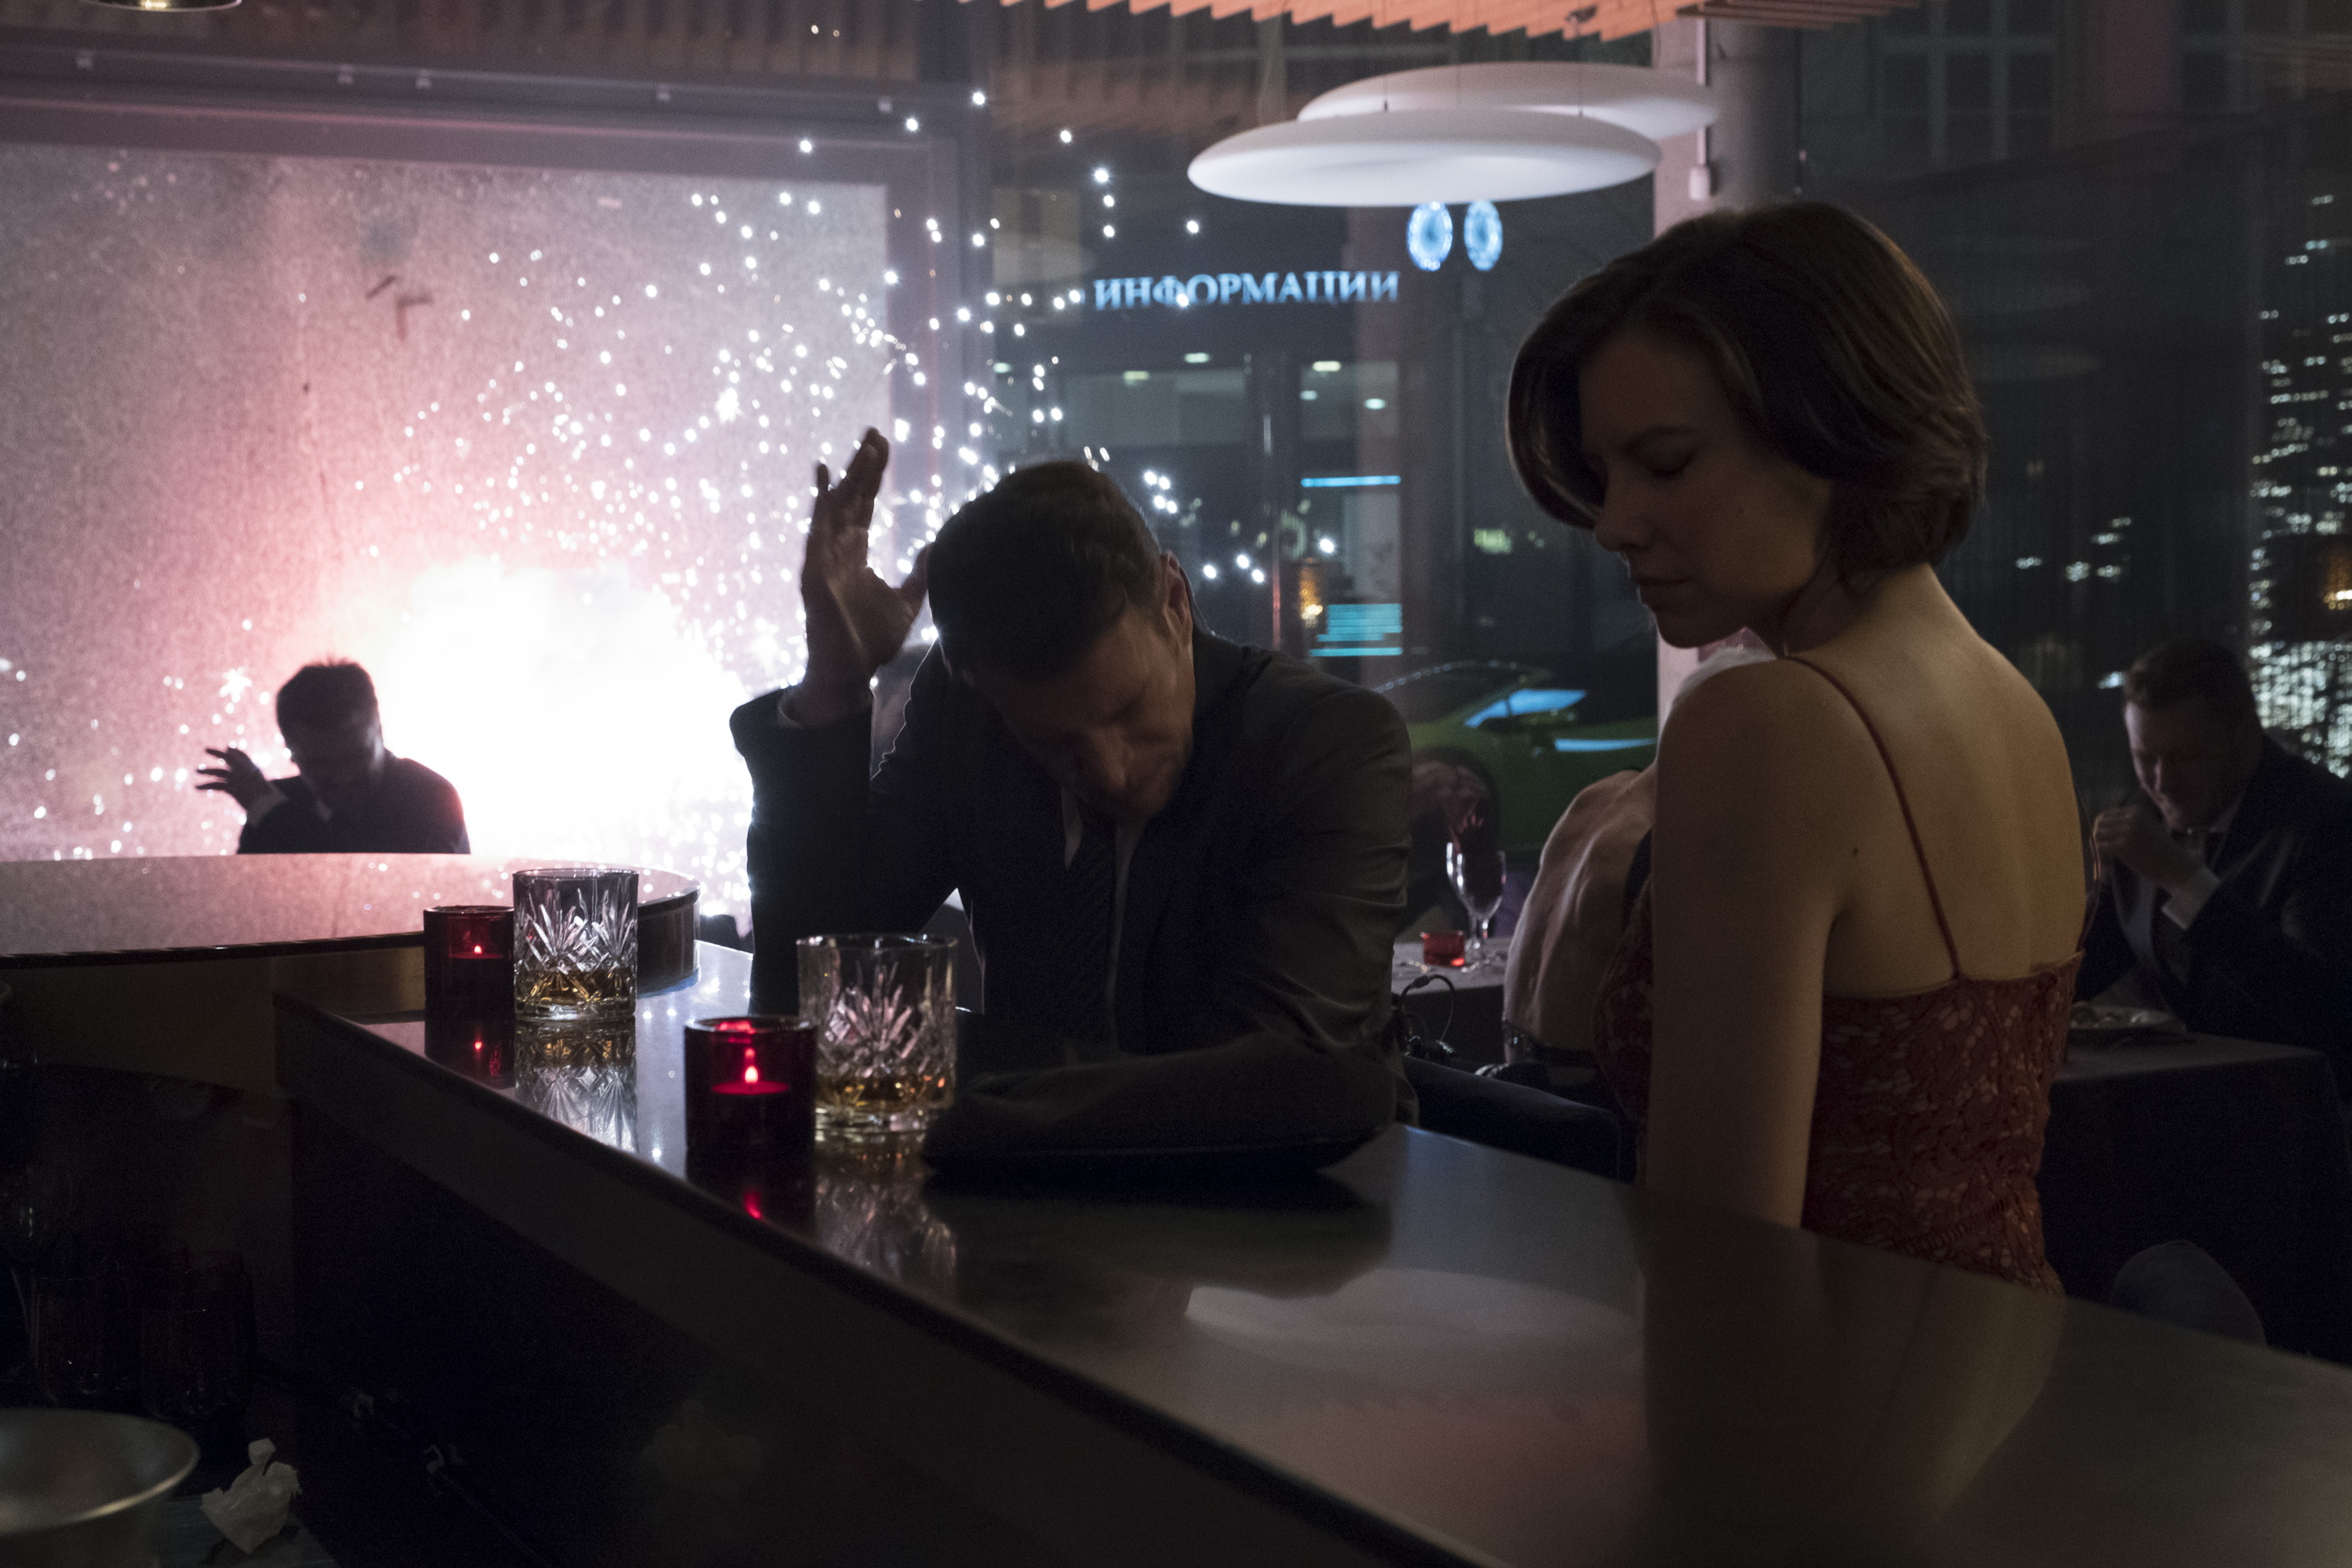 Whiskey Cavalier and Fiery Tribune share a drink together while he realizes that she's not who she says she is in 'Whiskey Cavalier'. (Source: ABC)